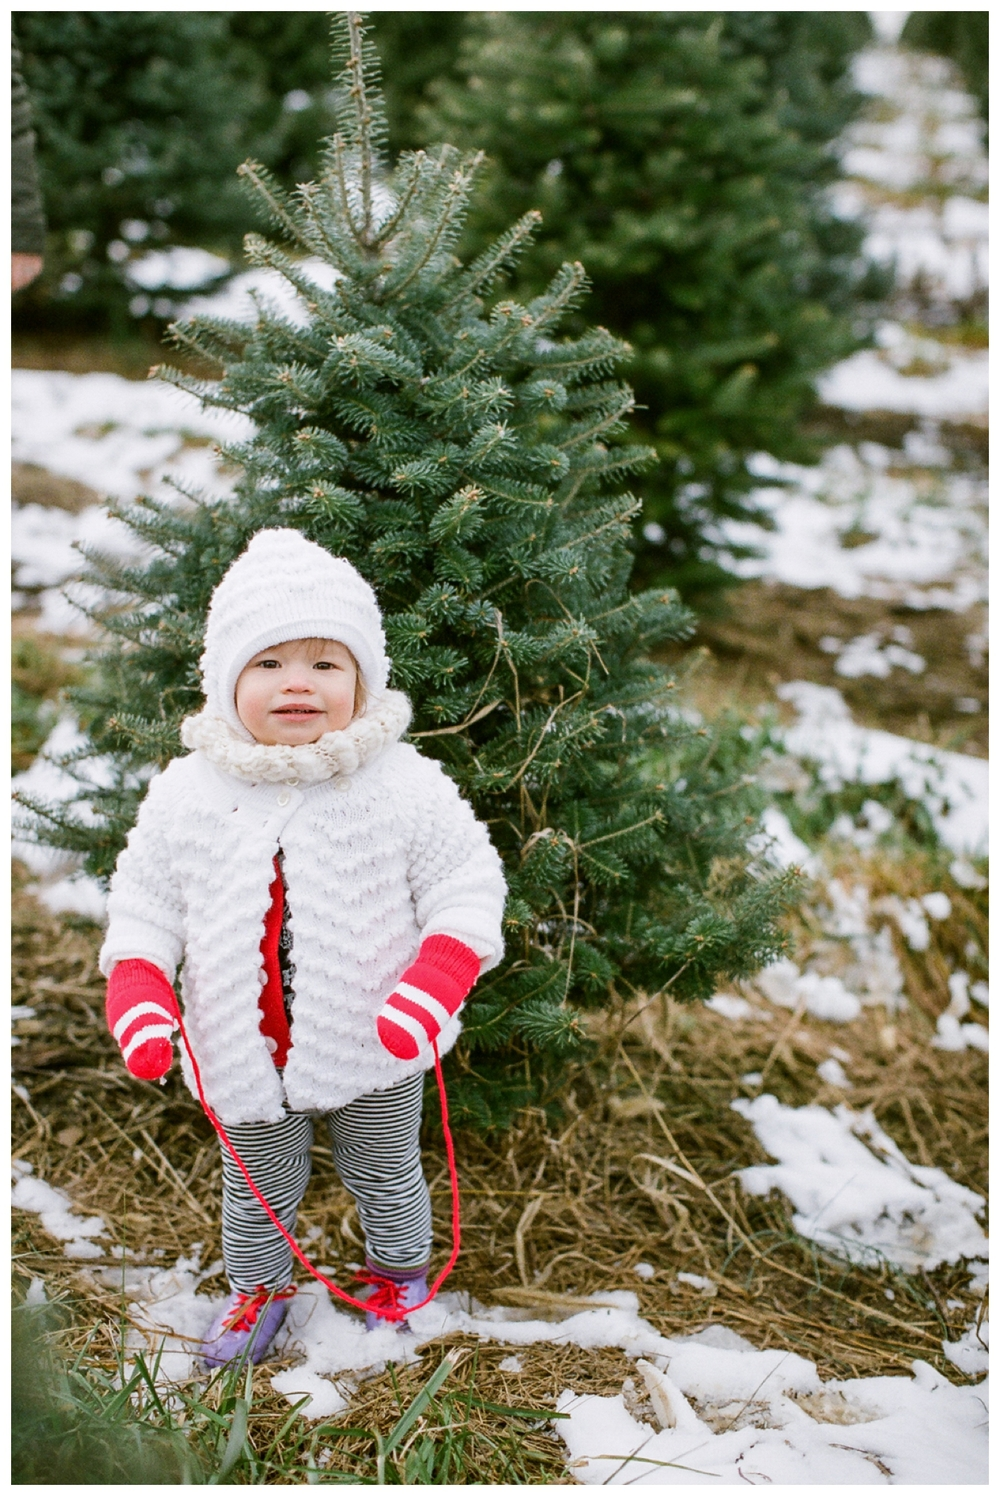 Christmas Tree Farm | Lily Glass Photography | Personal | FIlm from Richard Photo Lab